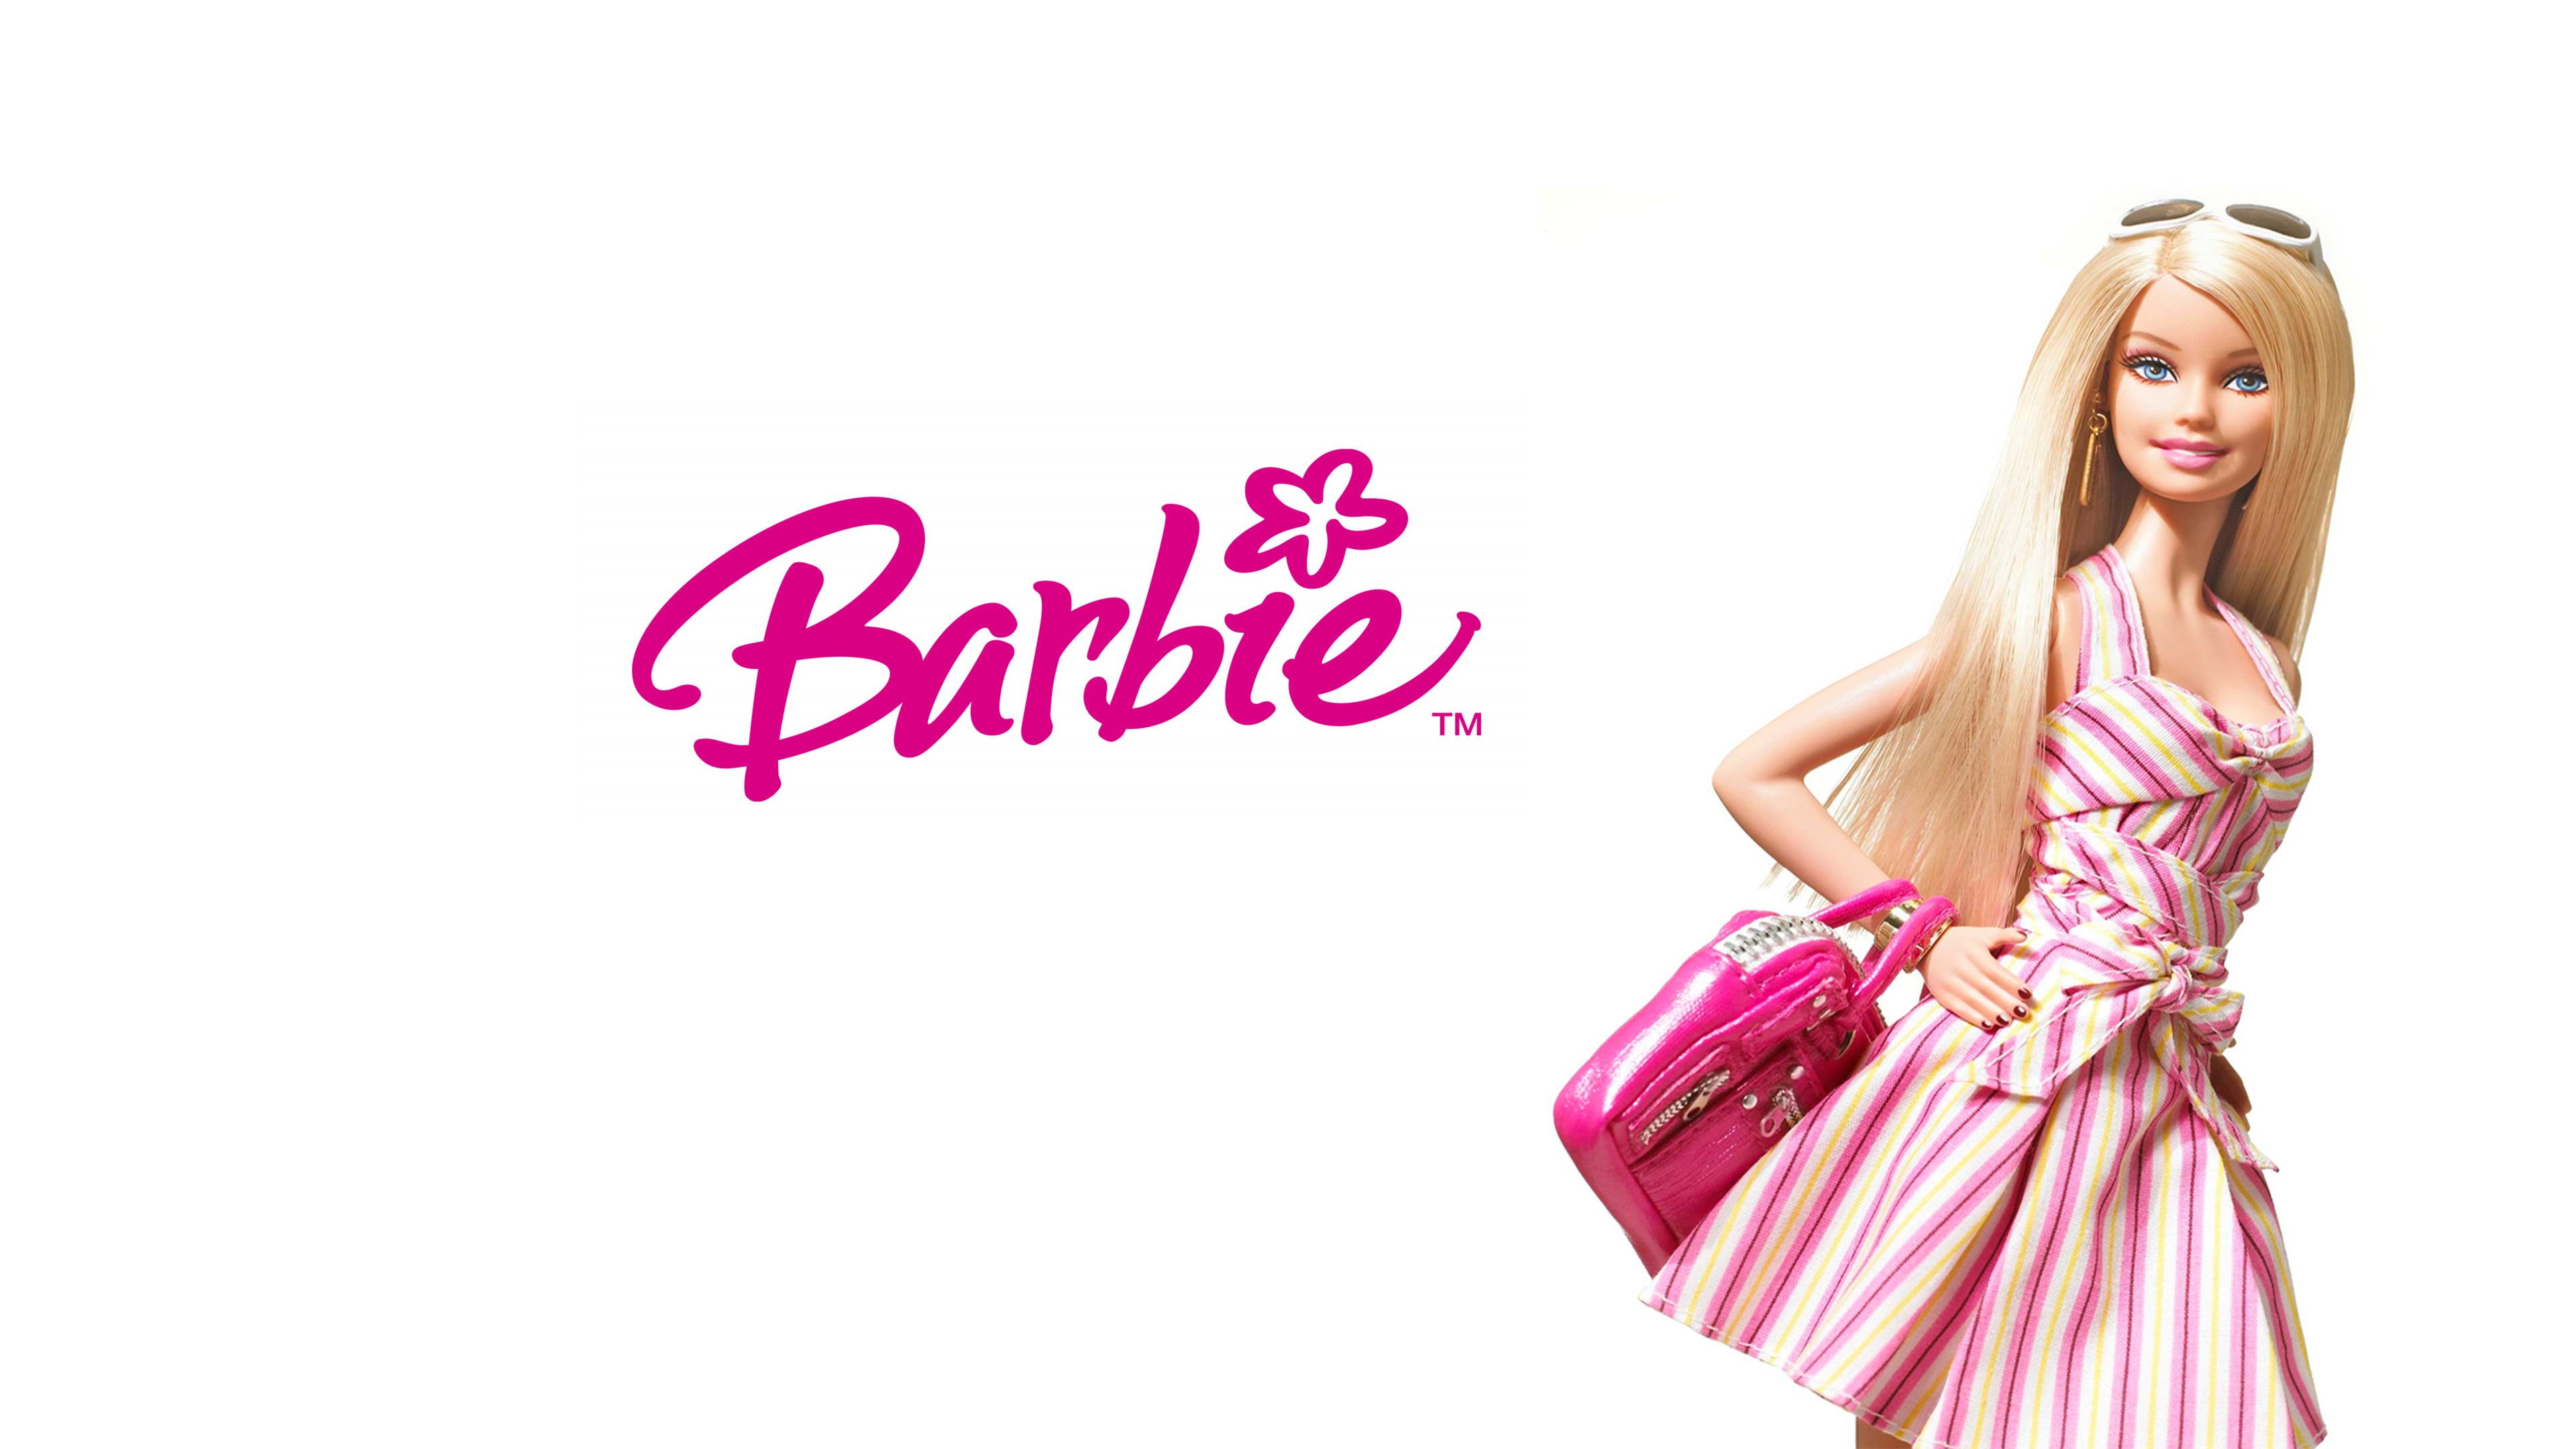 Hd barbie wallpaper 24047 3840x2160 px hdwallsource hd barbie wallpaper 24047 voltagebd Gallery